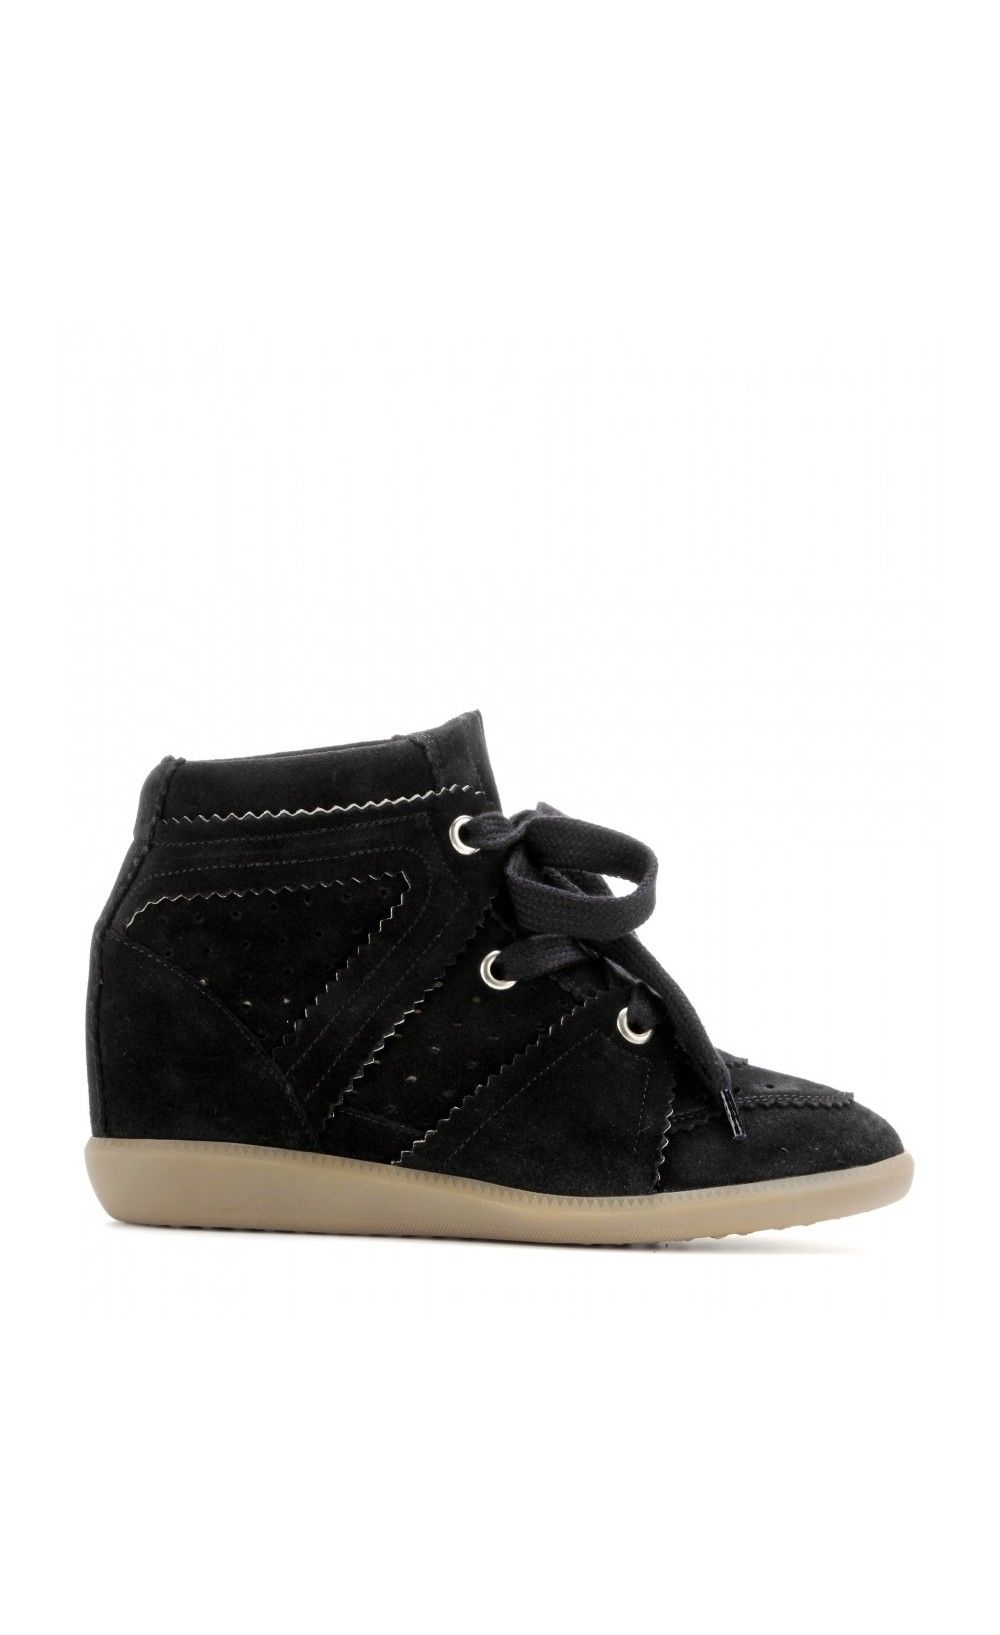 190f506d6447 Isabel Marant Bobby Suede Wedge Sneakers Trainers Black - Isabel Marant  IM   Wedges  Sneakers